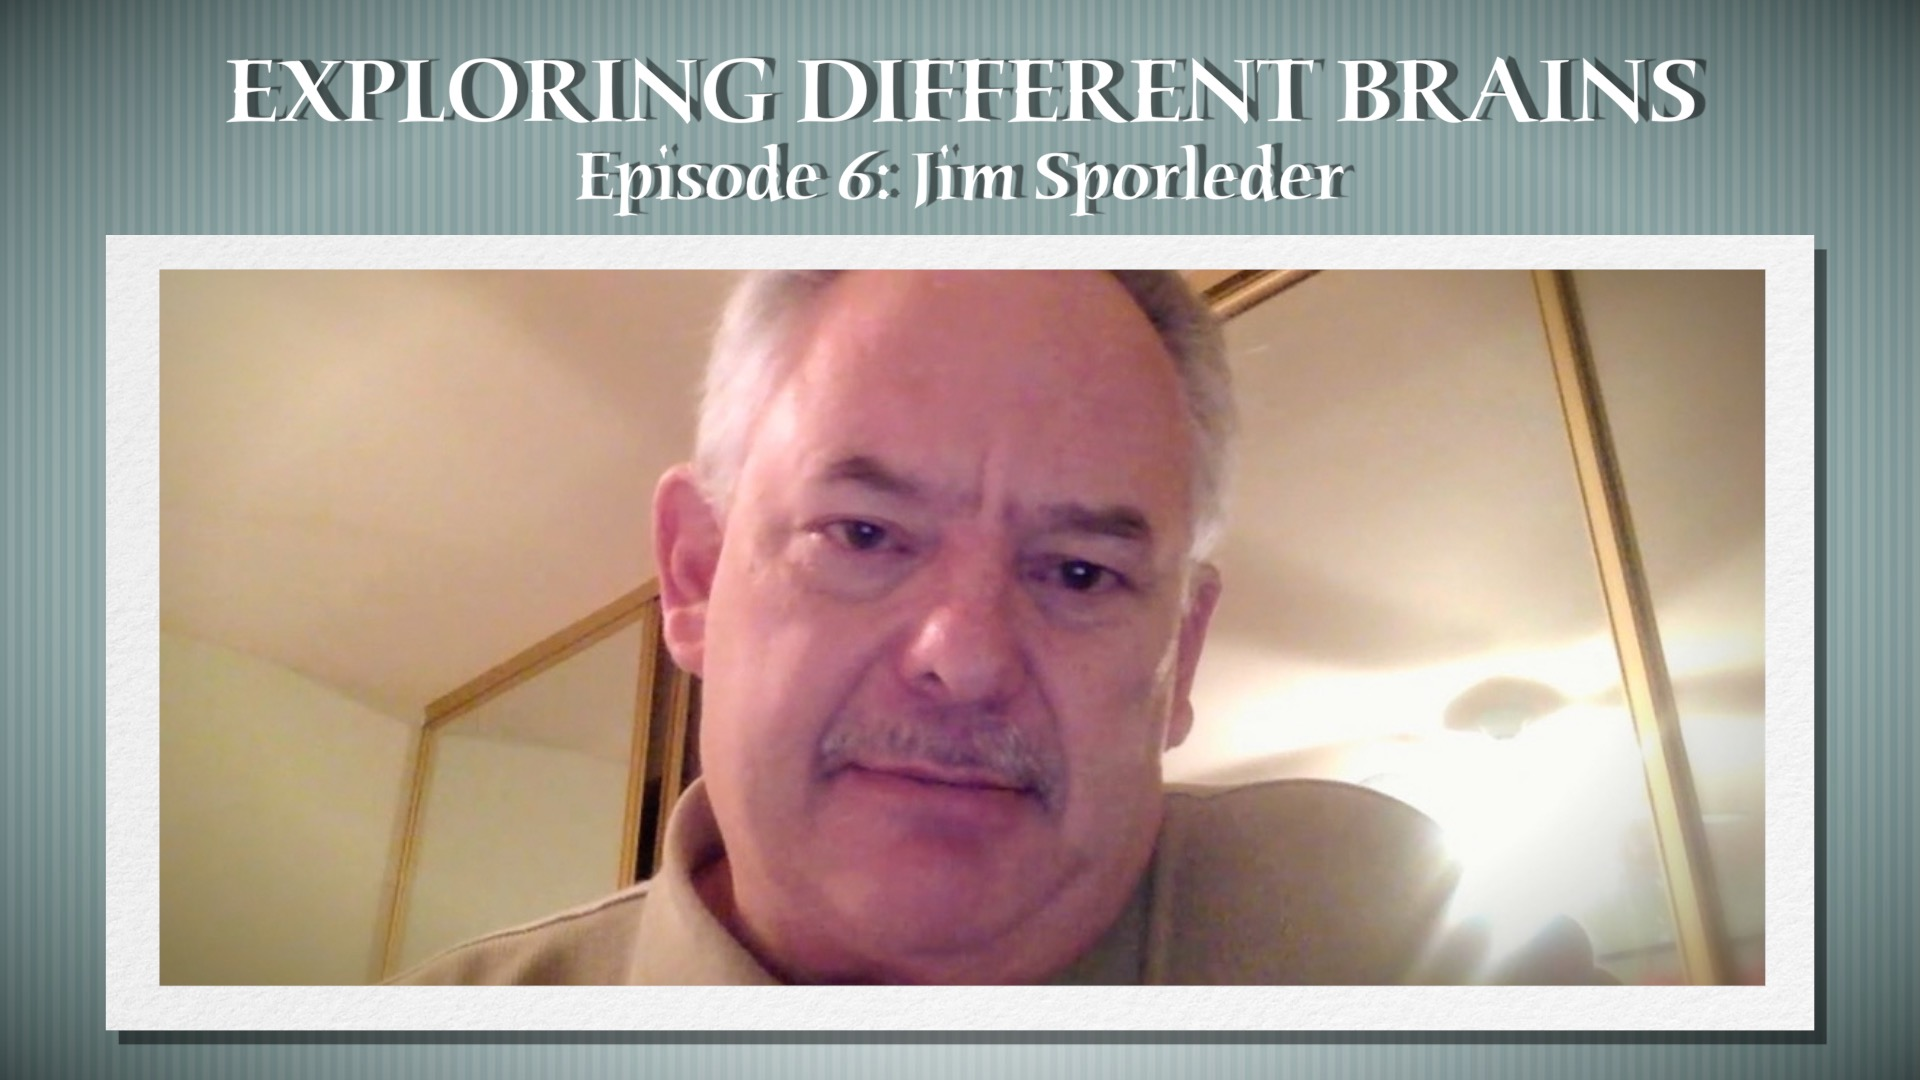 Teaching The Neurodiverse With Jim Sporleder | EXPLORING DIFFERENT BRAINS – Episode 06